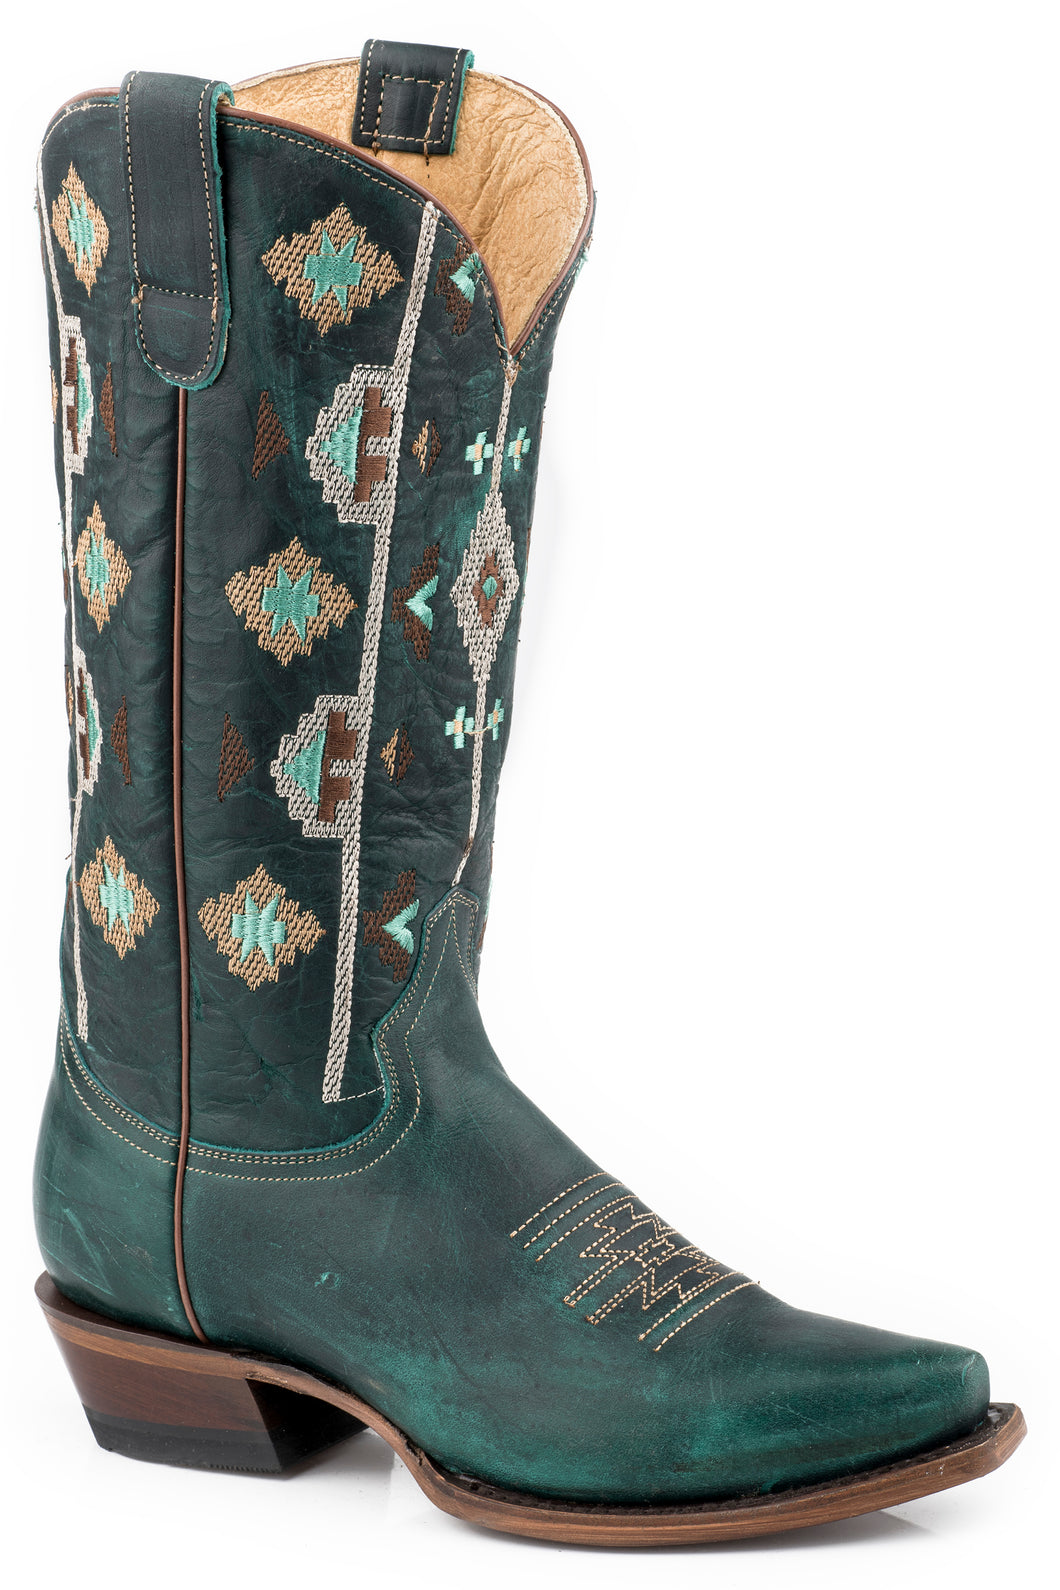 Out West Too Boot Womens Boots Waxy Turquoise Vamp Shaft